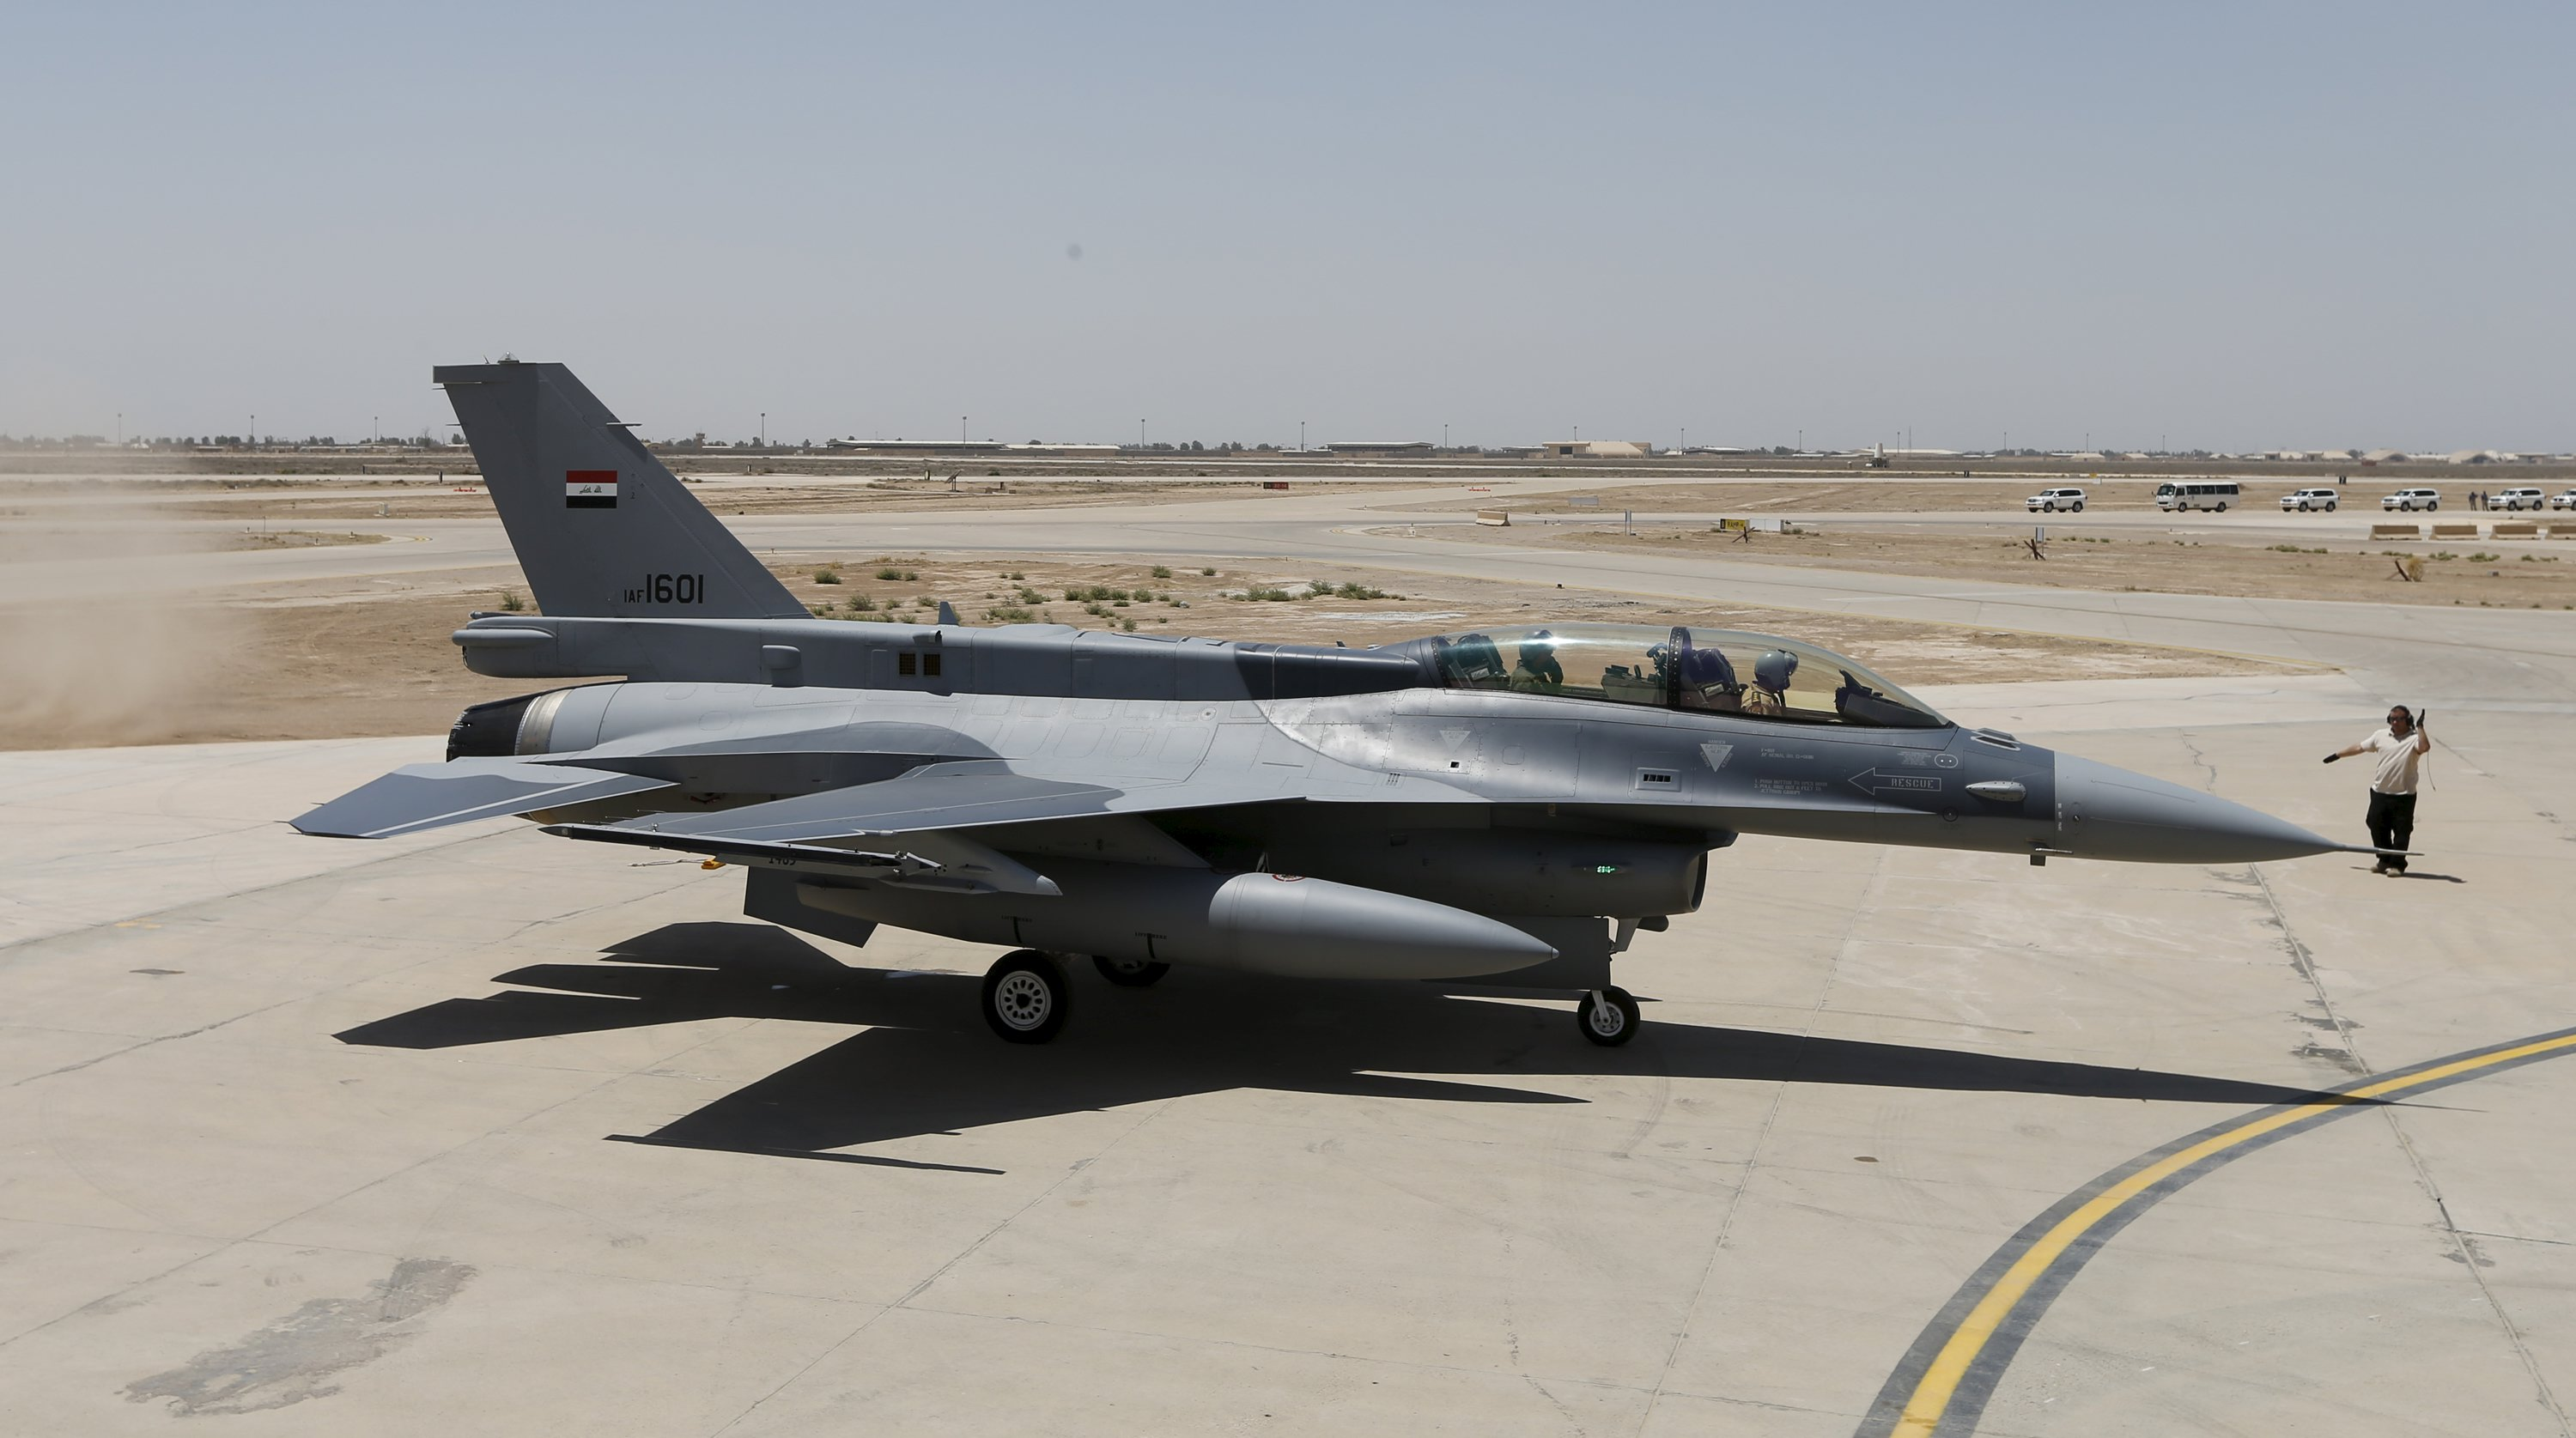 Iraq's Defence Minister Khaled al-Obeidi (left) sits in a F-16 fighter jet, during an official ceremony to receive four of these aircrafts from the US at a military base in Balad, Iraq, July 20, 2015. Photo: Reuters